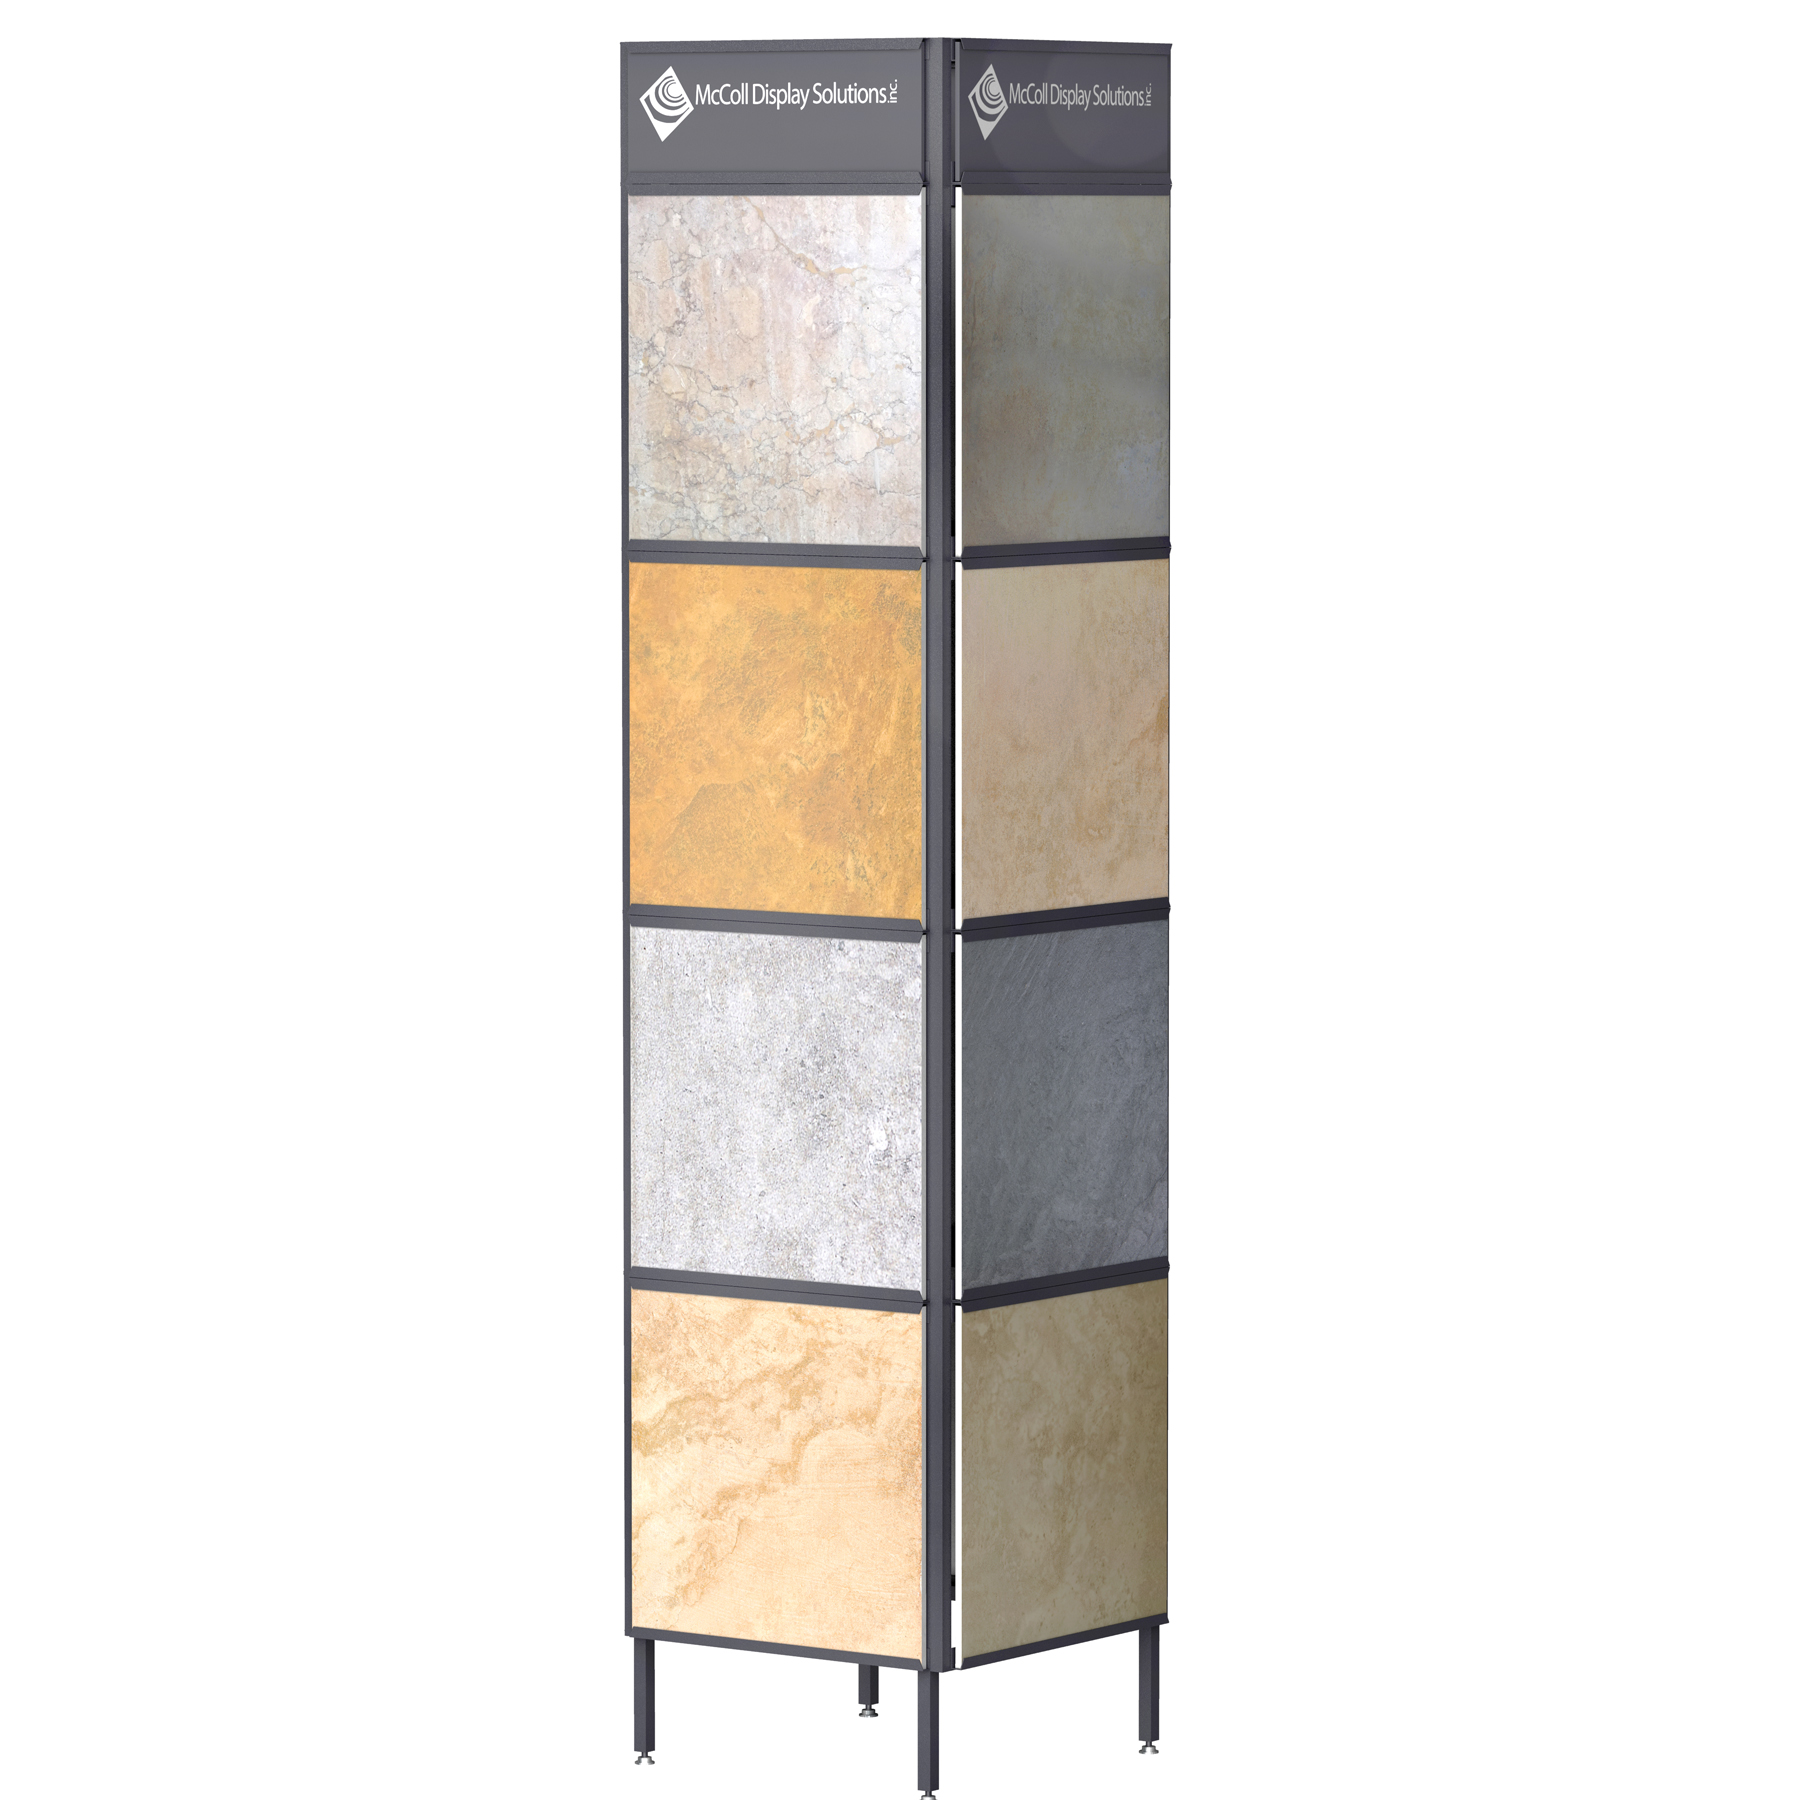 The Sturdy CD07 Steel Tower Channel System Holds Ceramic Stone Marble Travertine Tiles